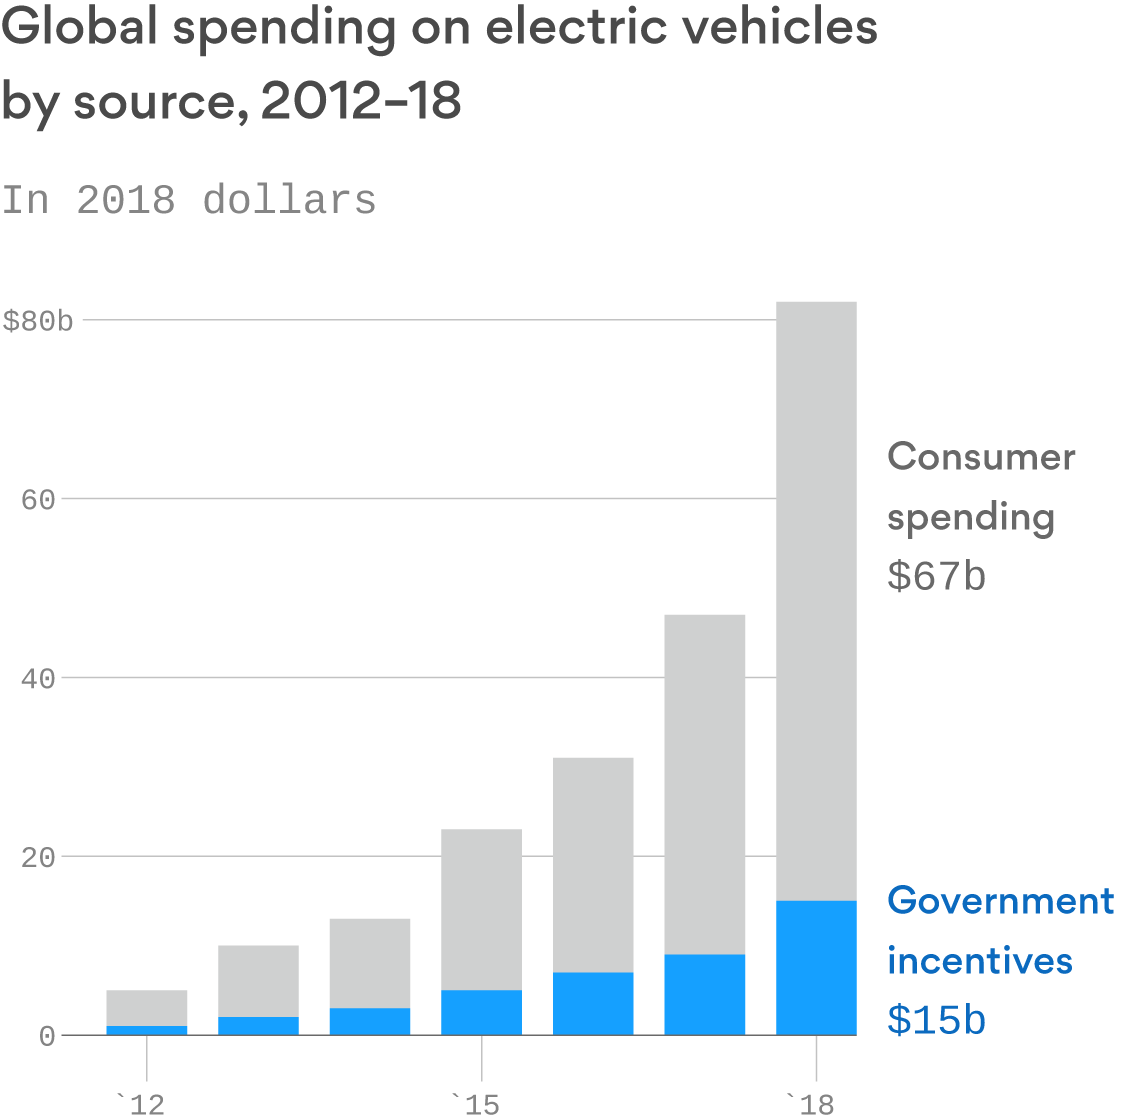 Government incentives account for nearly 20% of global spending on electric vehicle purchases